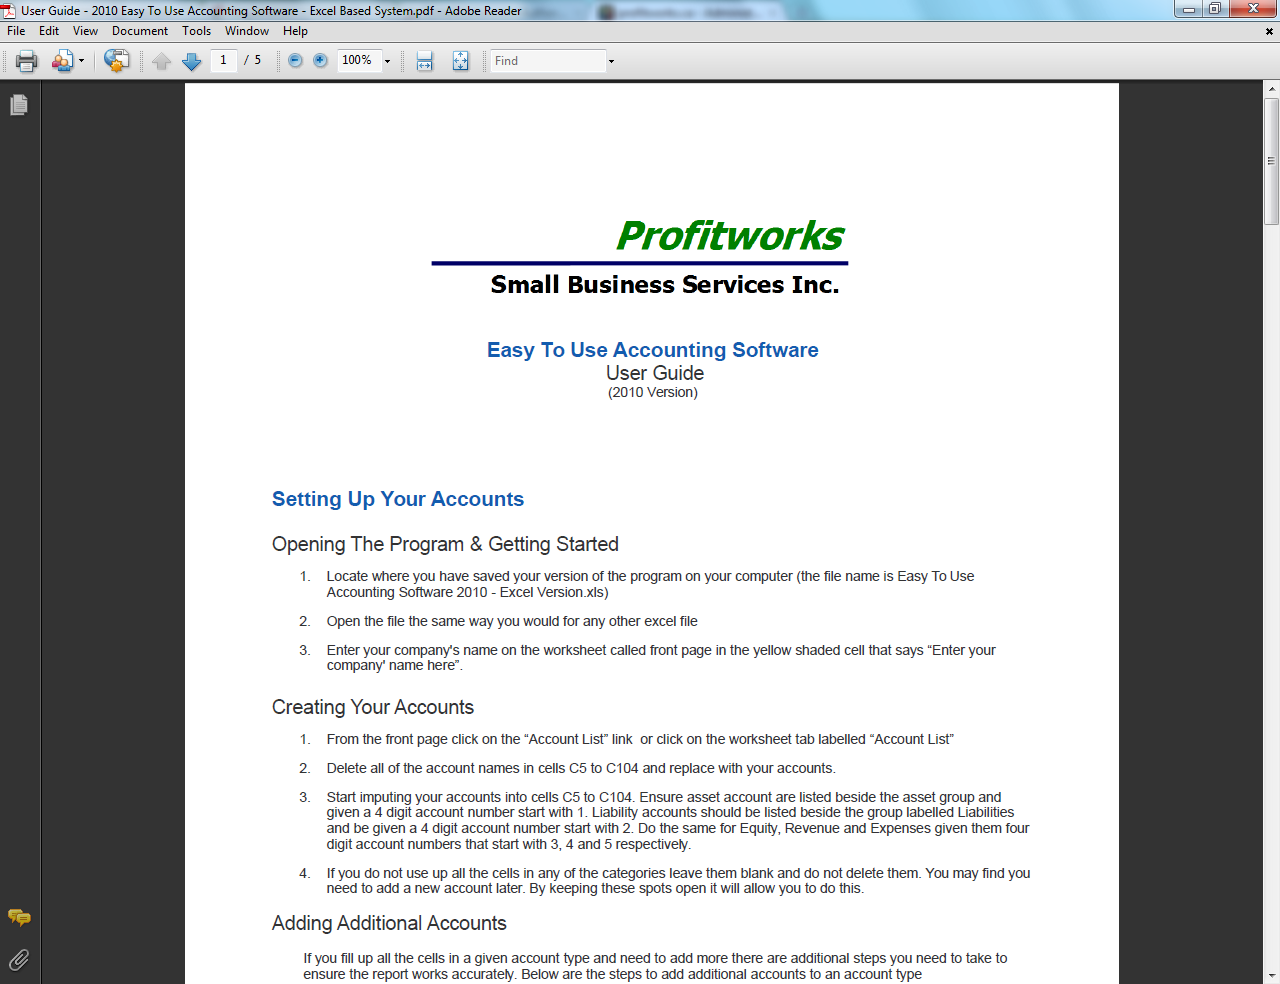 Easy To Use Accounting Software Manual